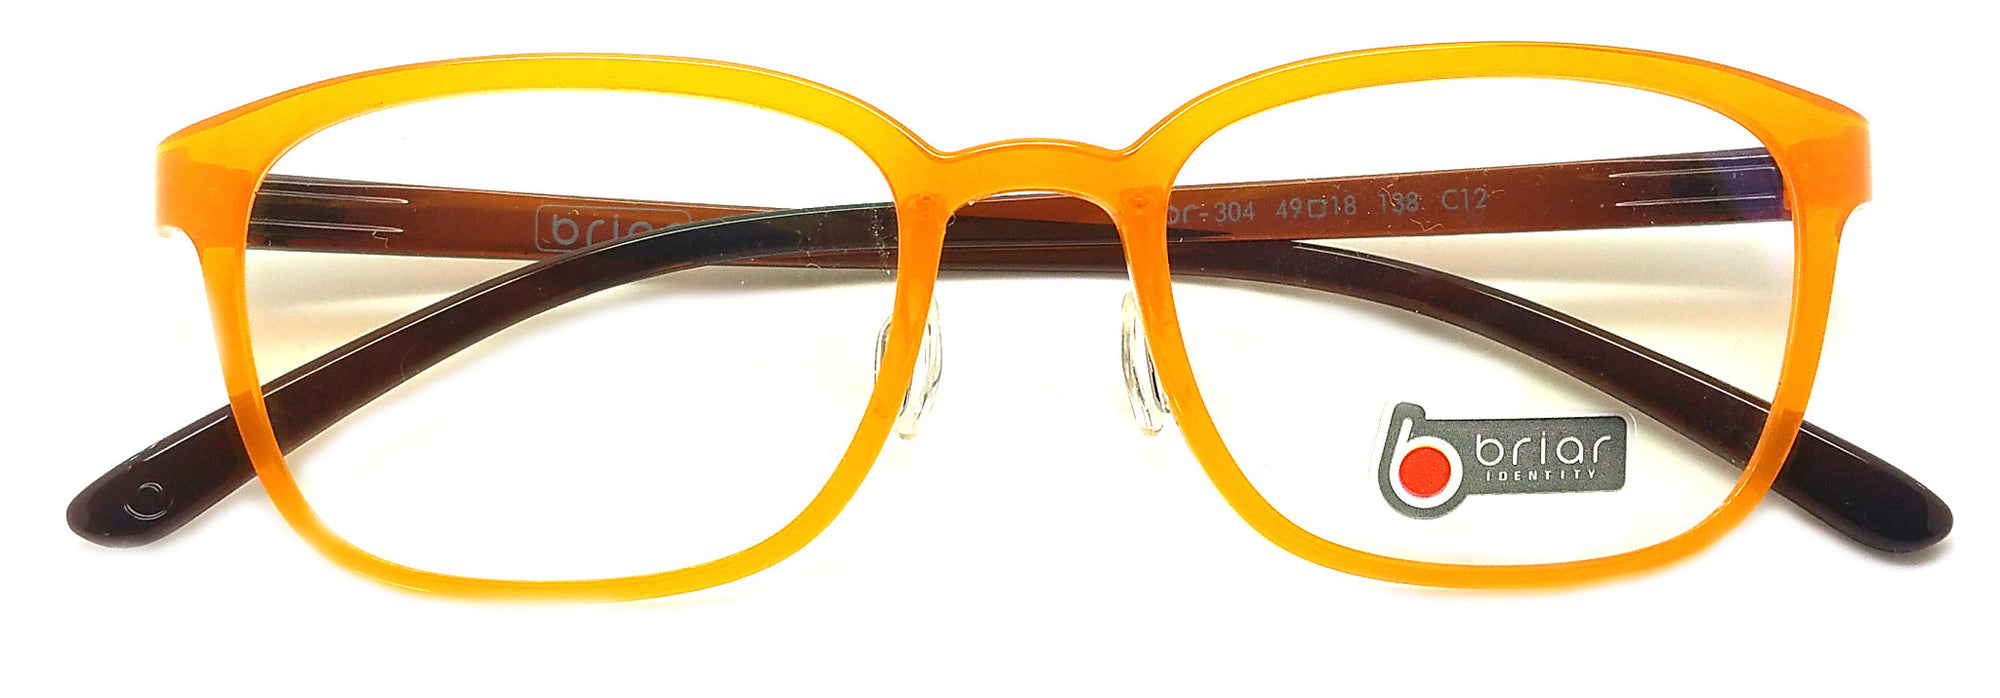 Briar Eyeglasses Prescription Frame Super Light, Flexible,  BR 304 C12